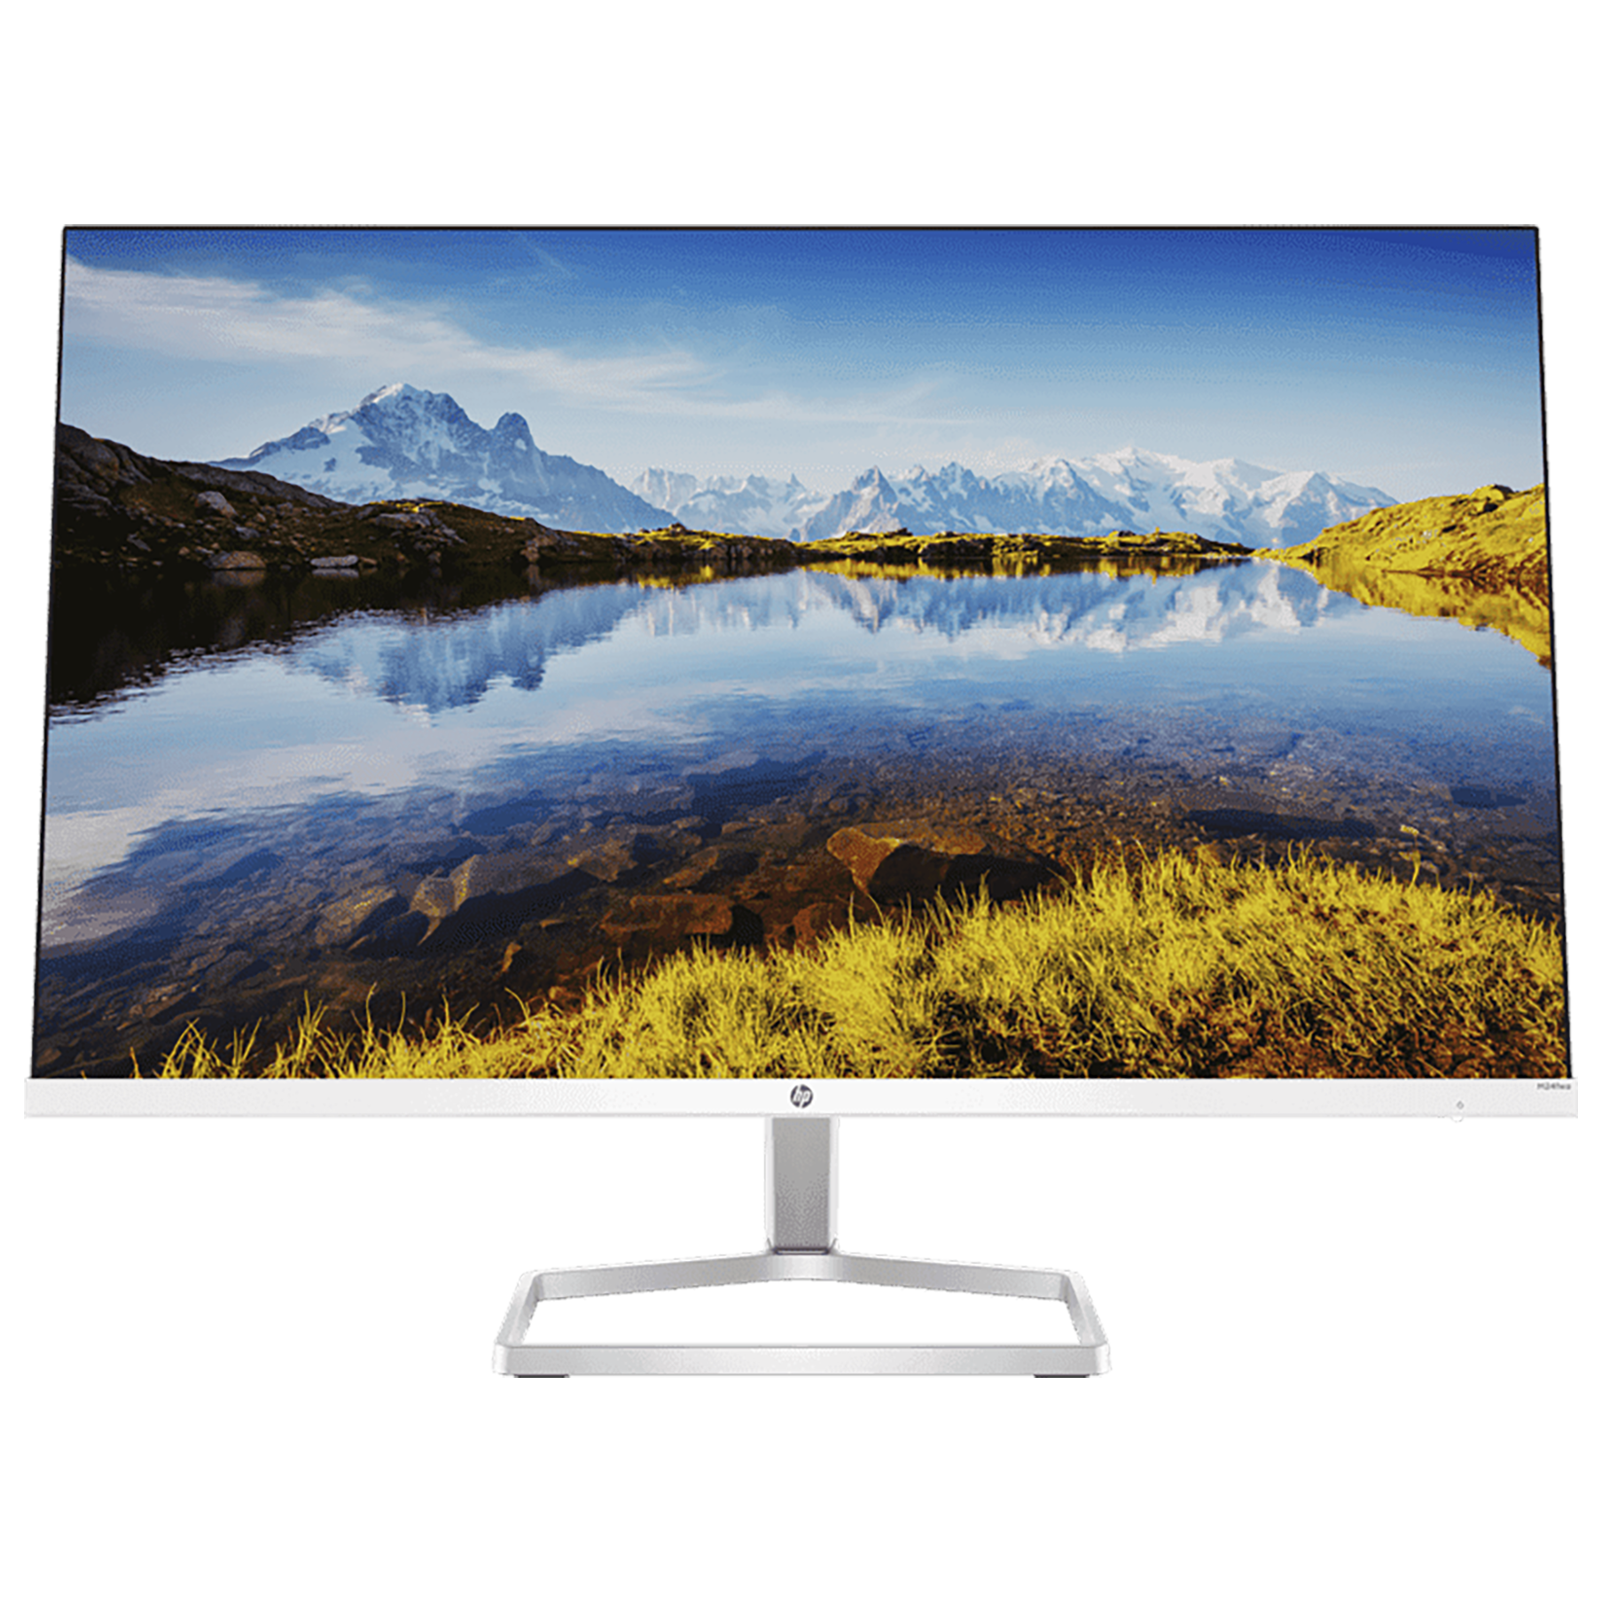 HP M24FWA 60.45cm (23.8 Inches) Full HD Monitor (HP Eye Ease with Eyesafe Certified Technology, 1 x HDMI 1.4 | 1 x VGA Port Connectivity, 34Y23AA, Silver)_1